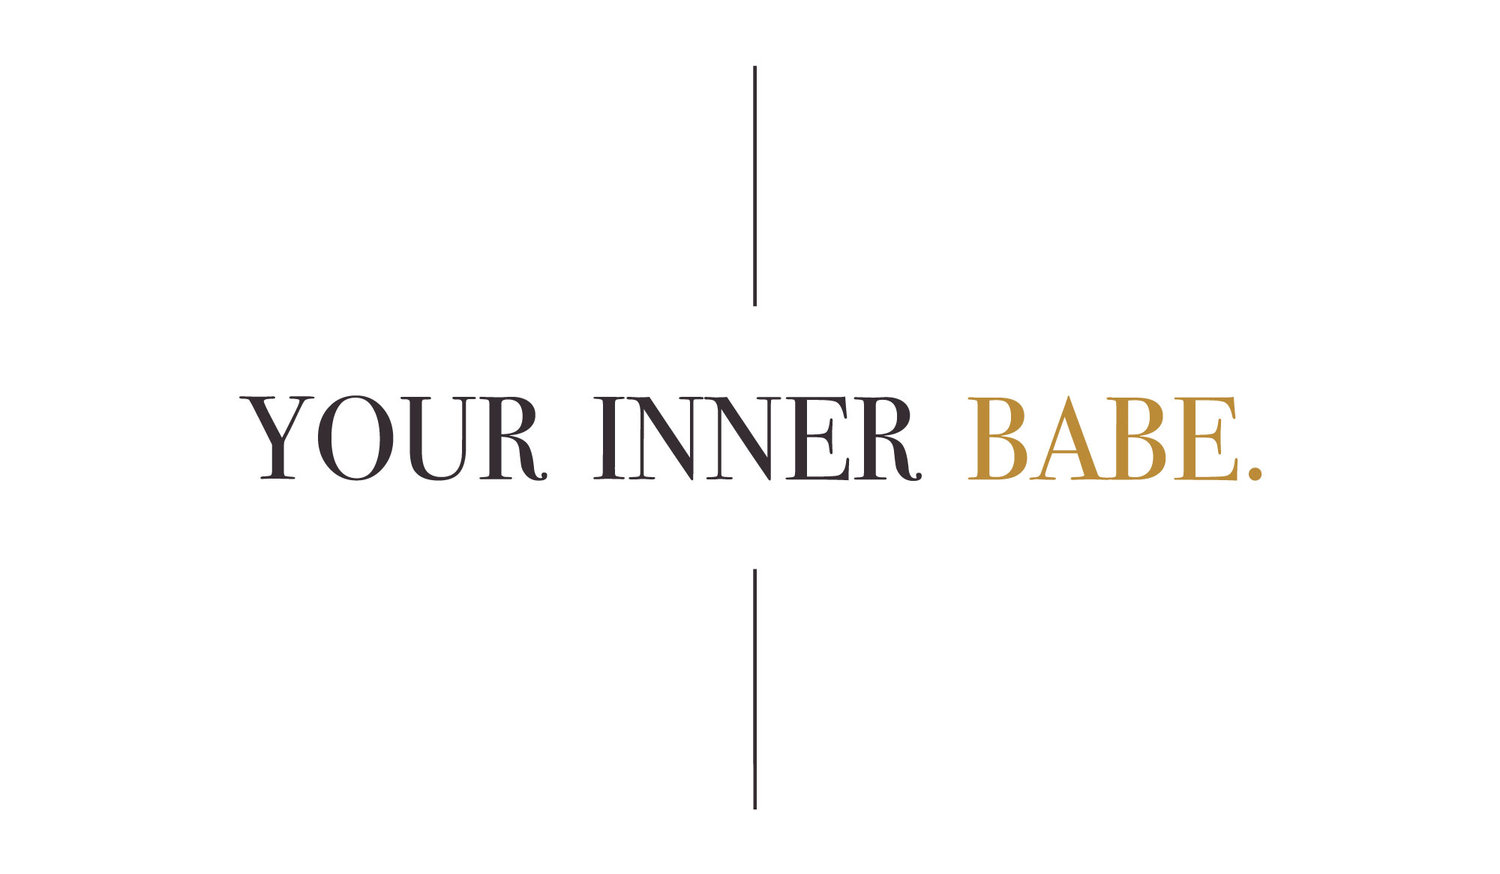 YOUR INNER BABE